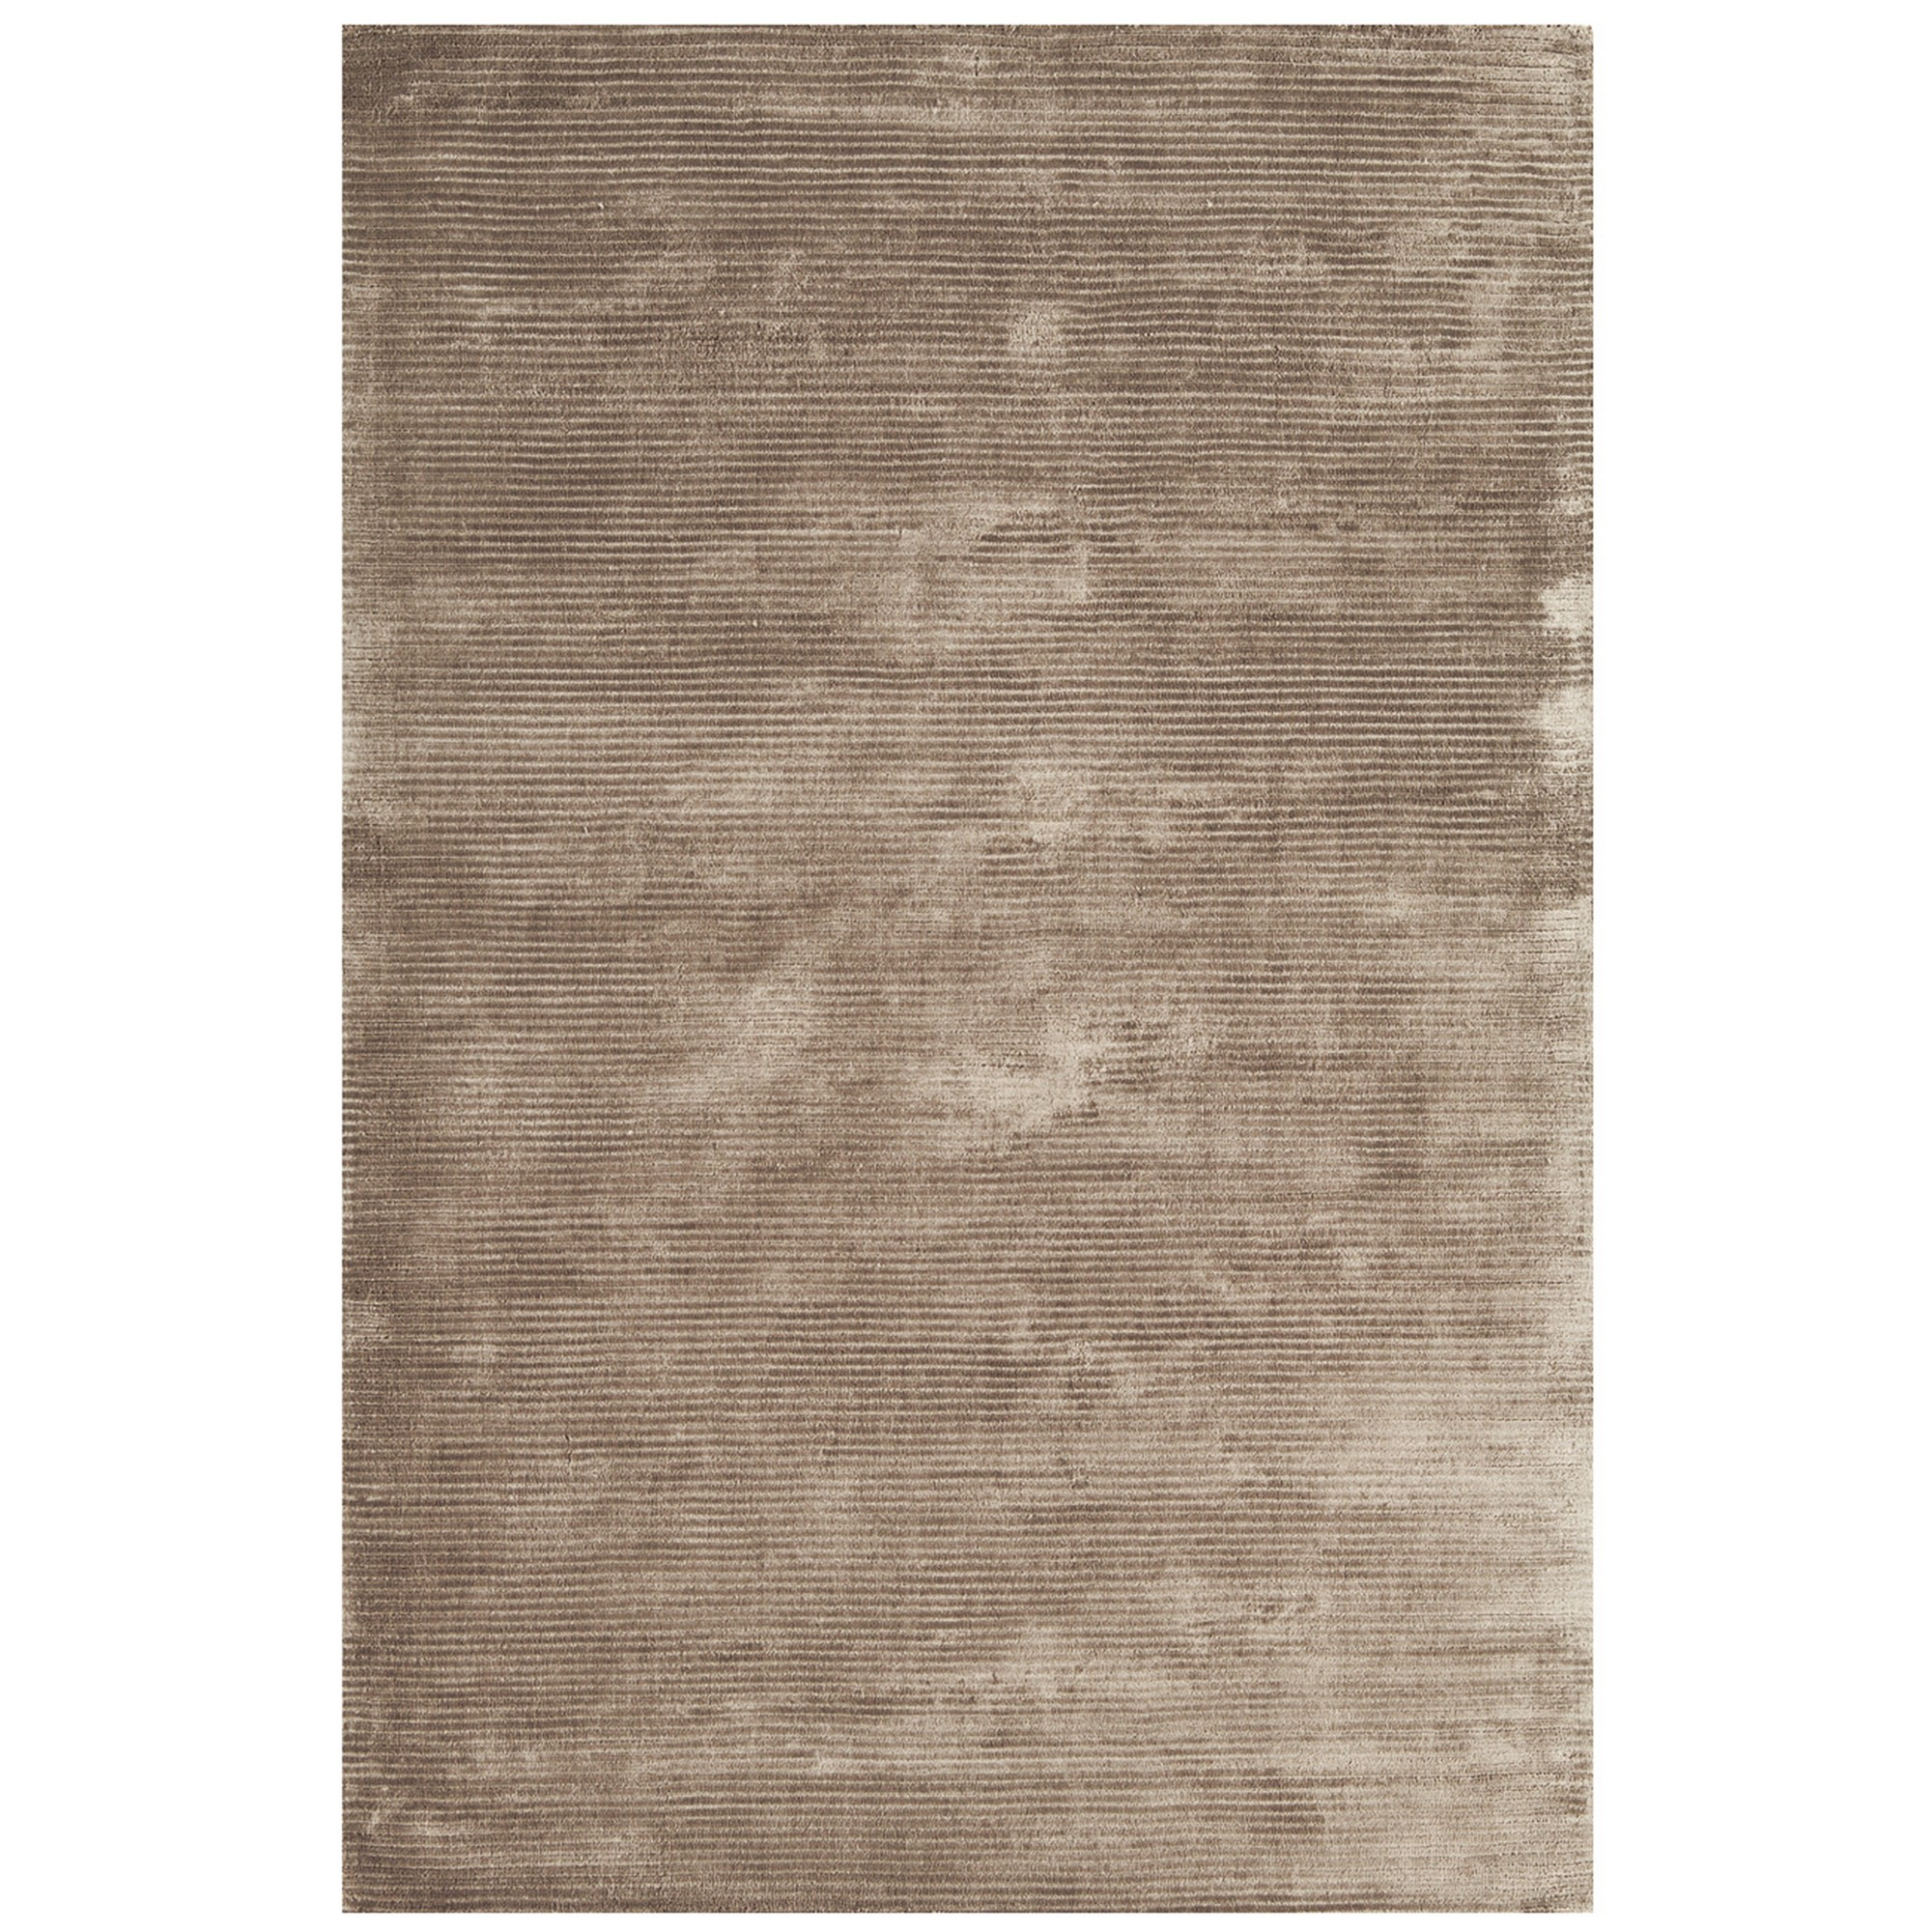 Bellagio Rugs in Taupe